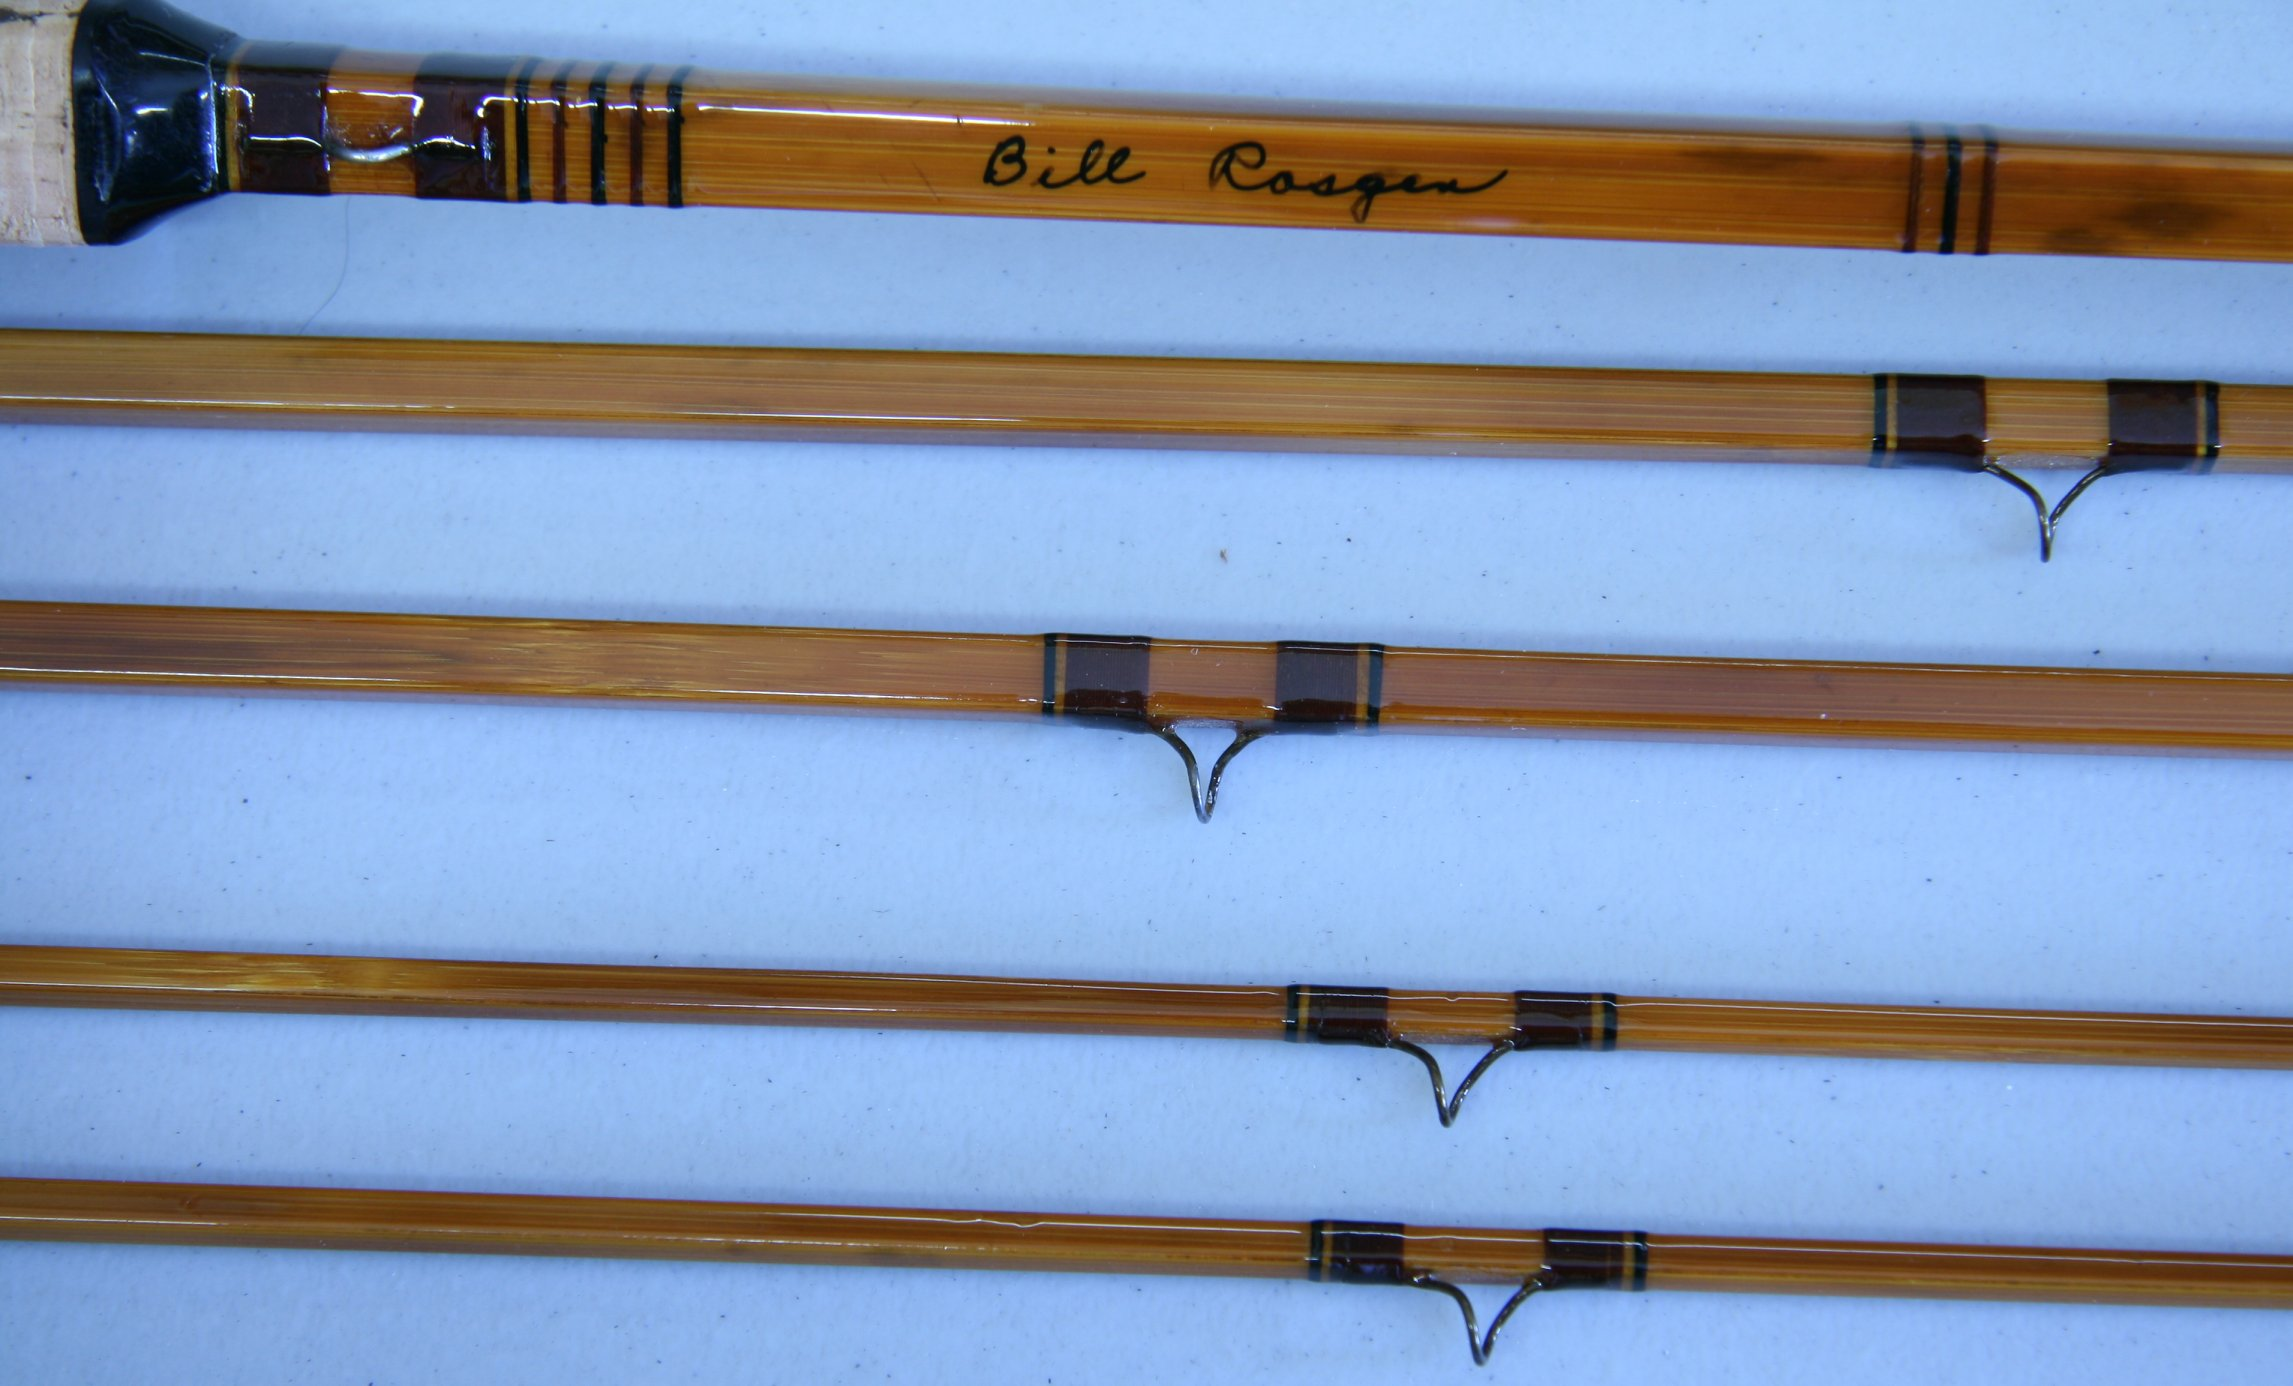 Rick S Rods Vintage Fly Fishing Rods And Reels Denver Colorado